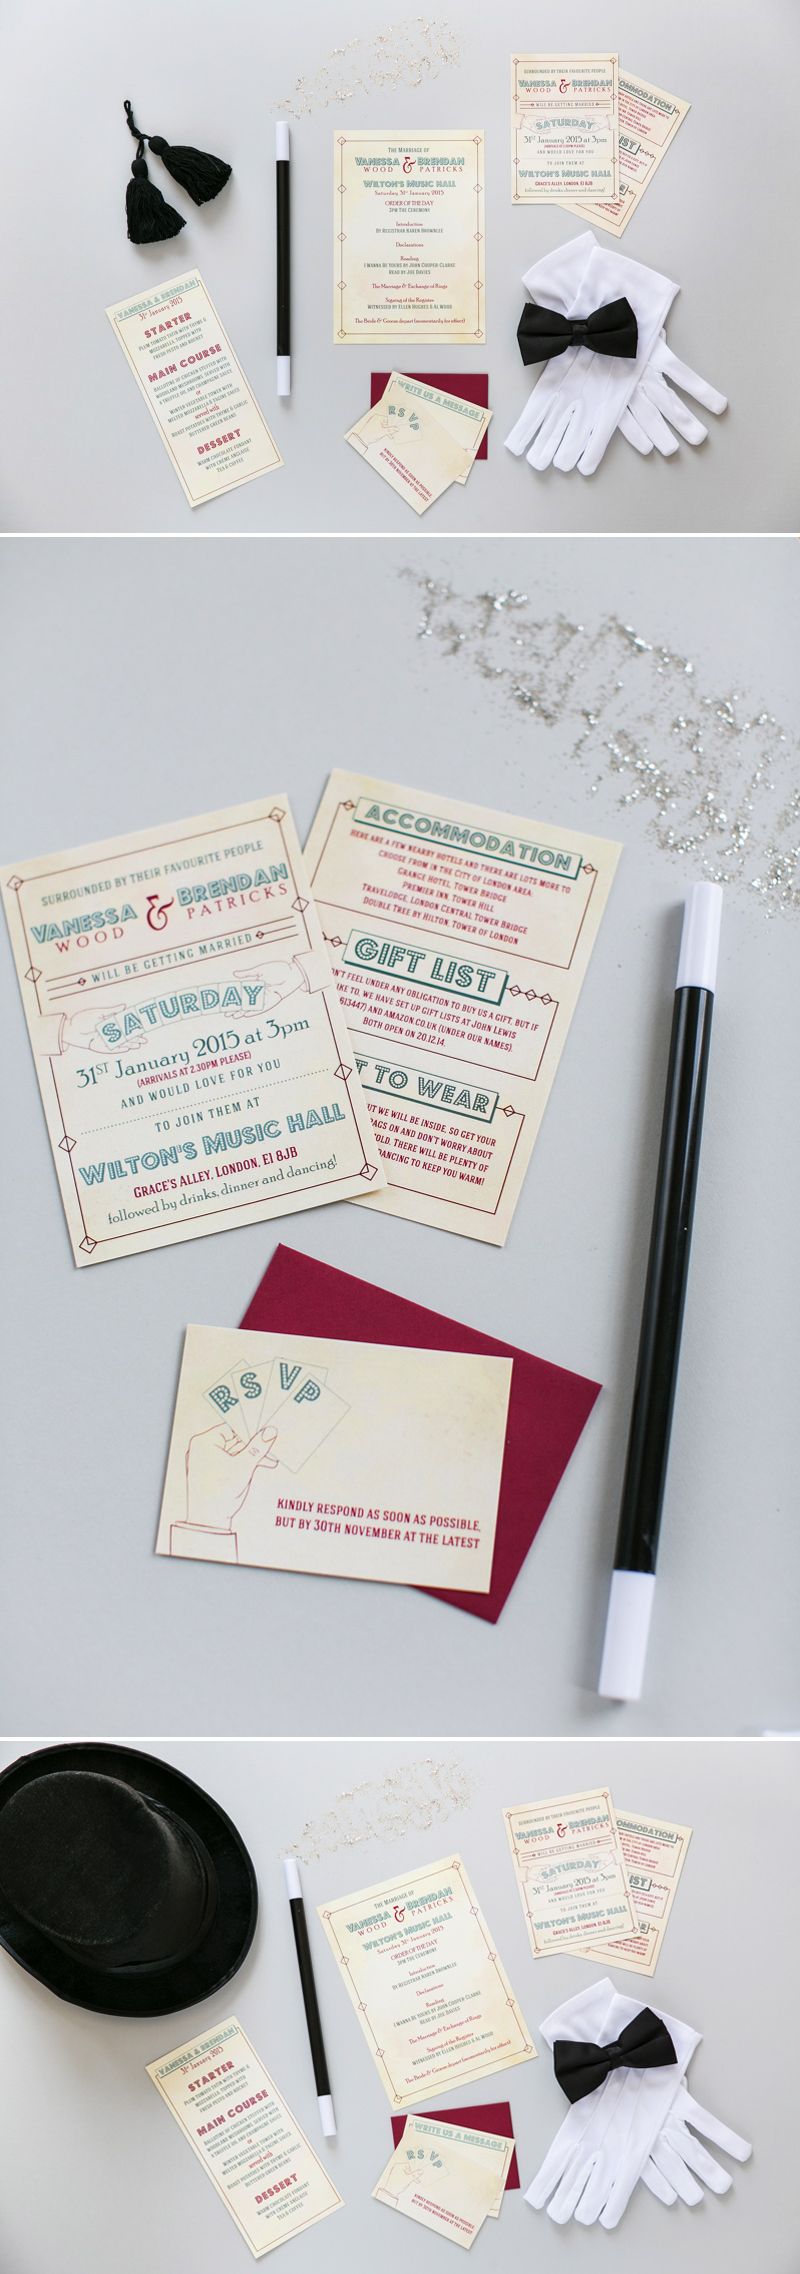 luxury-wedding-stationery-kate-ruth-romey-10